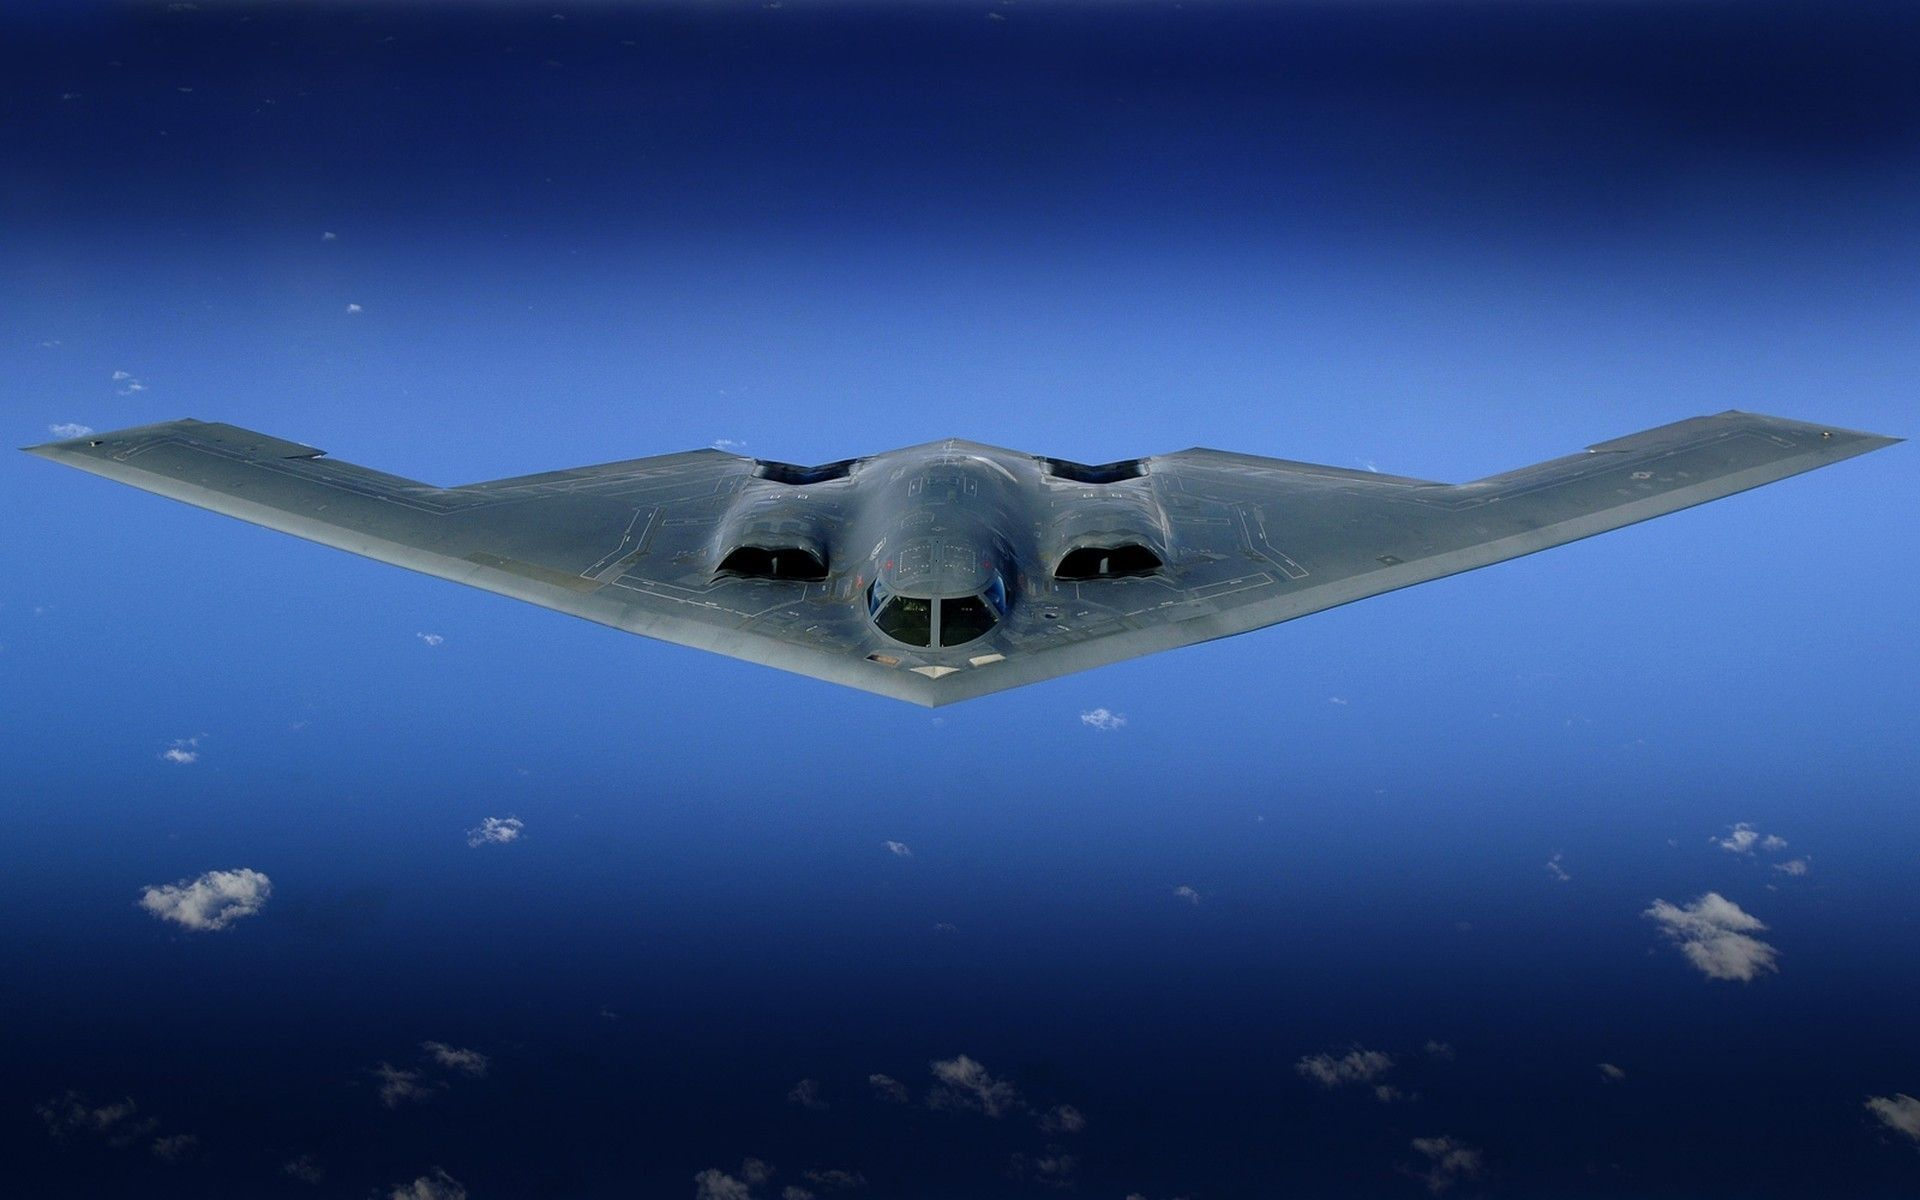 10 Incredible Facts About the B-2 Spirit Stealth Bomber